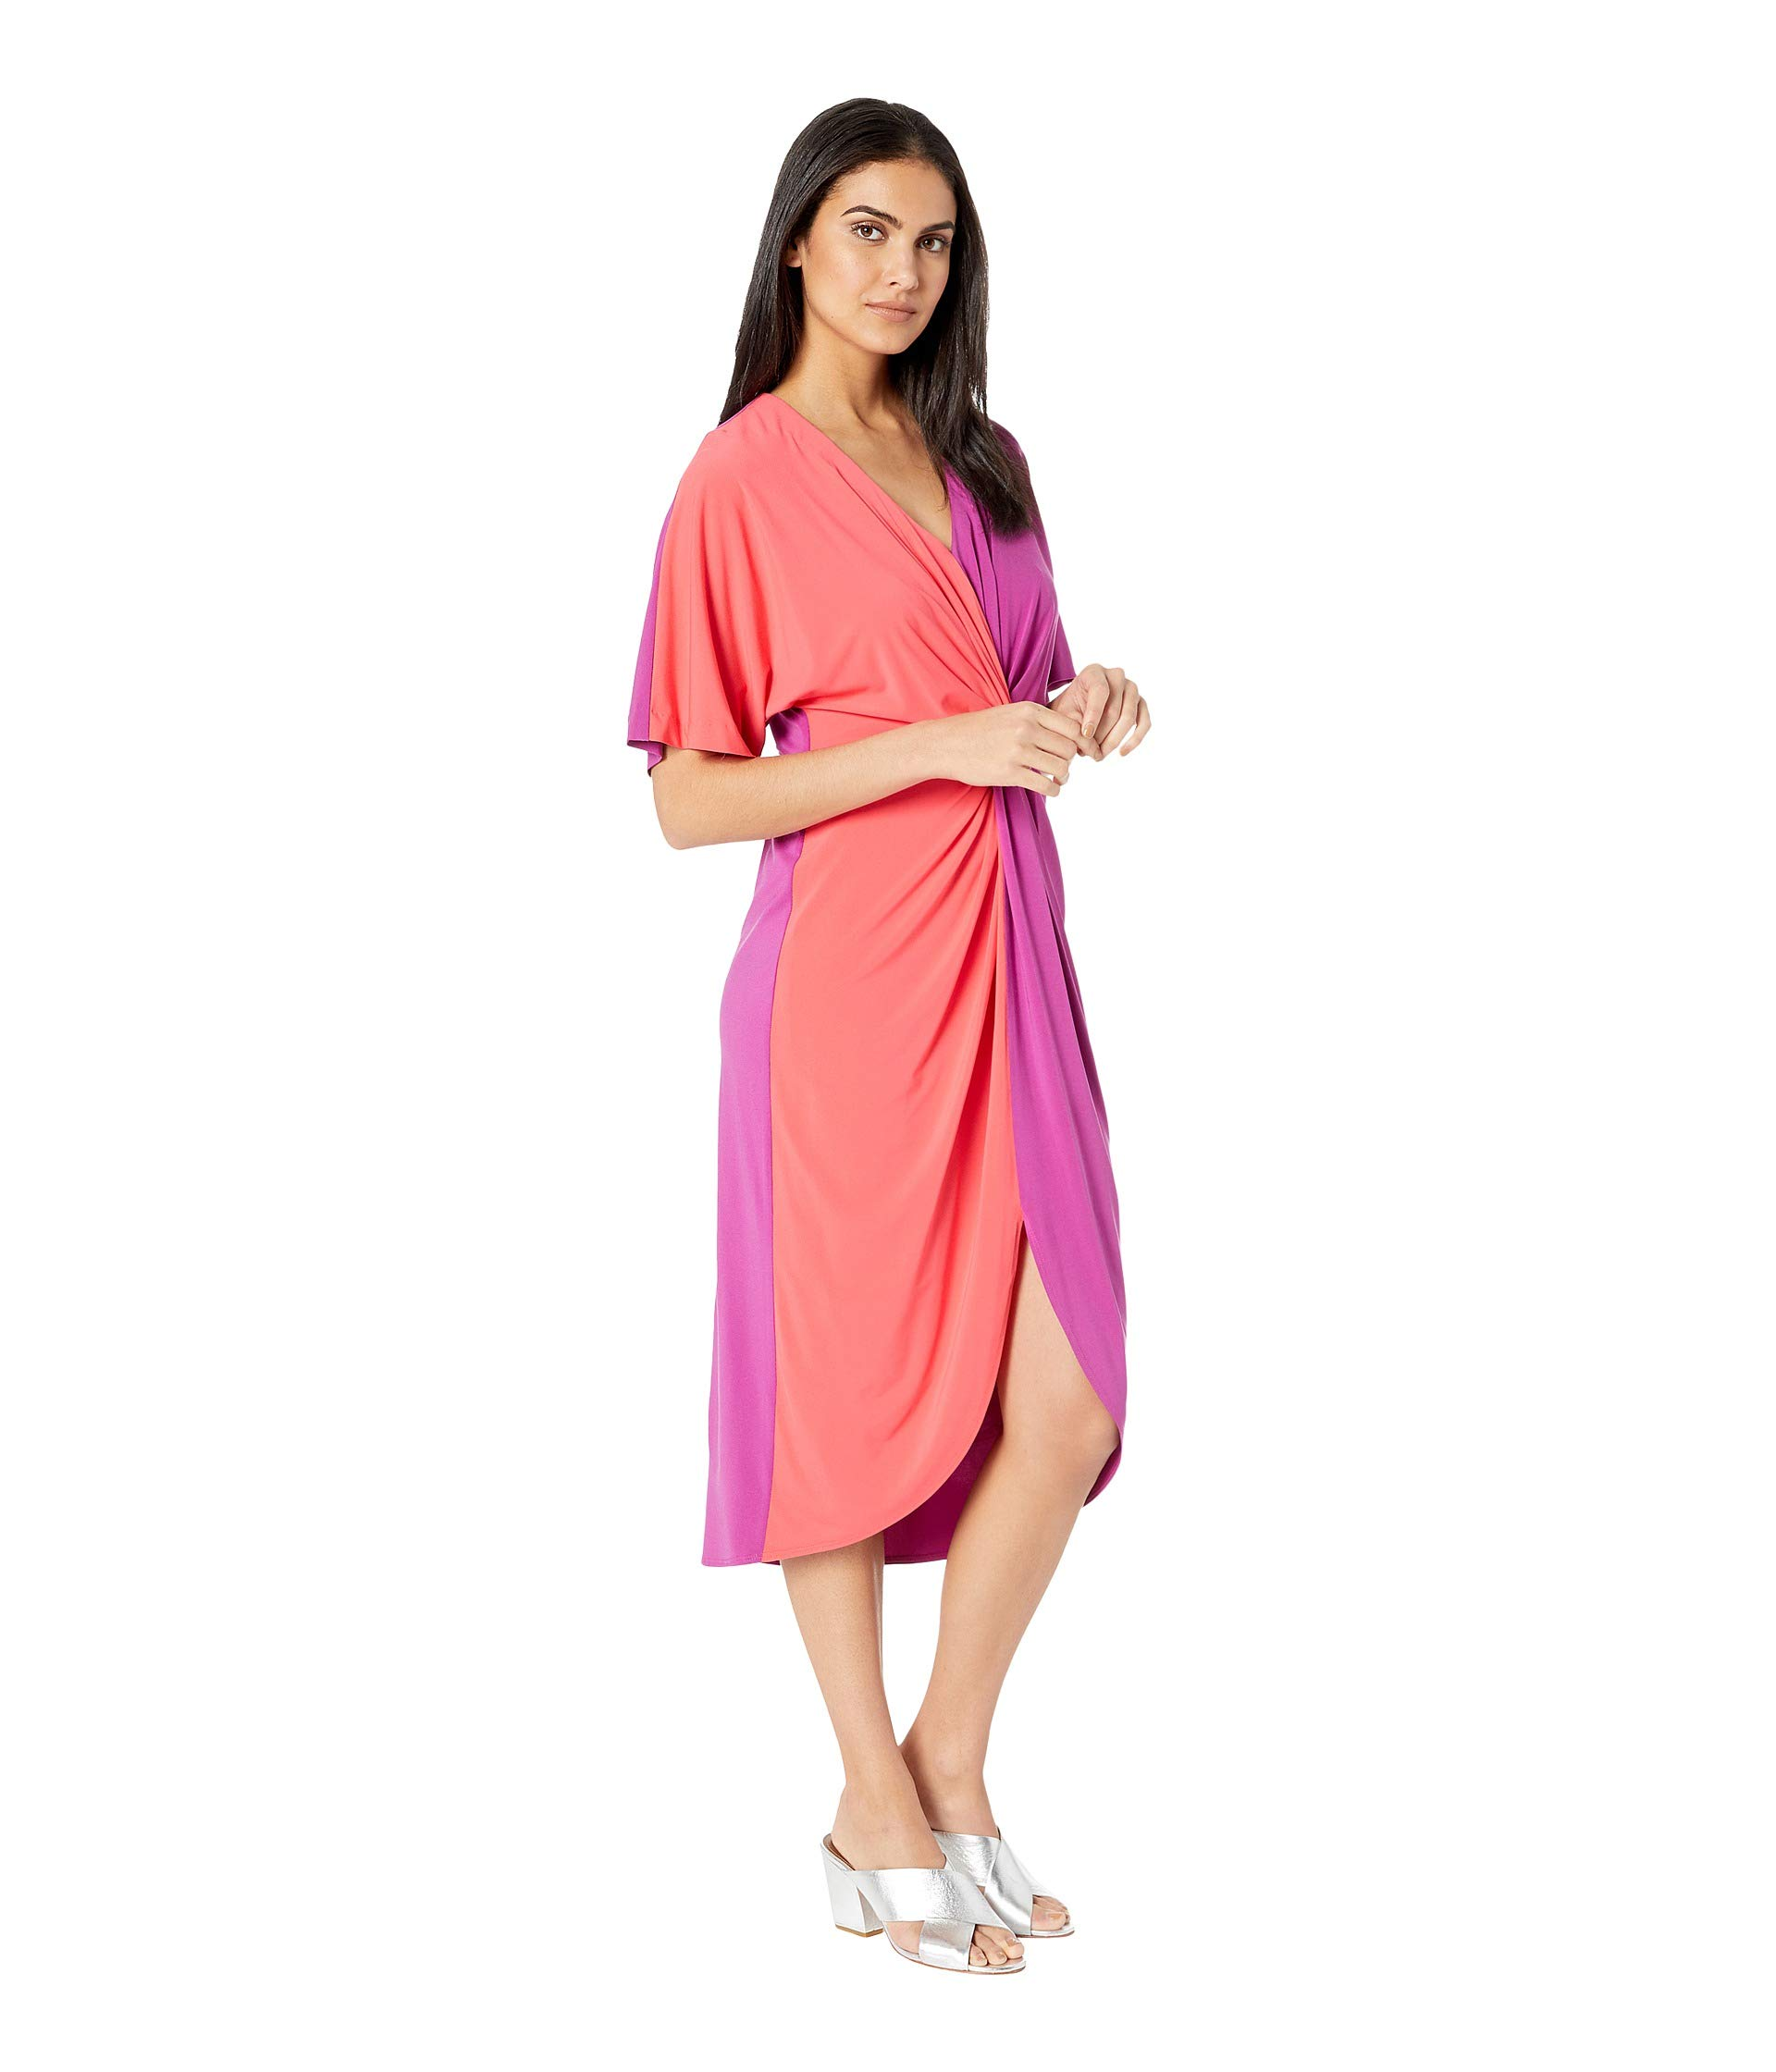 Viola Etta Pop Vivid Trina pink Dress Turk wqHCxO7F